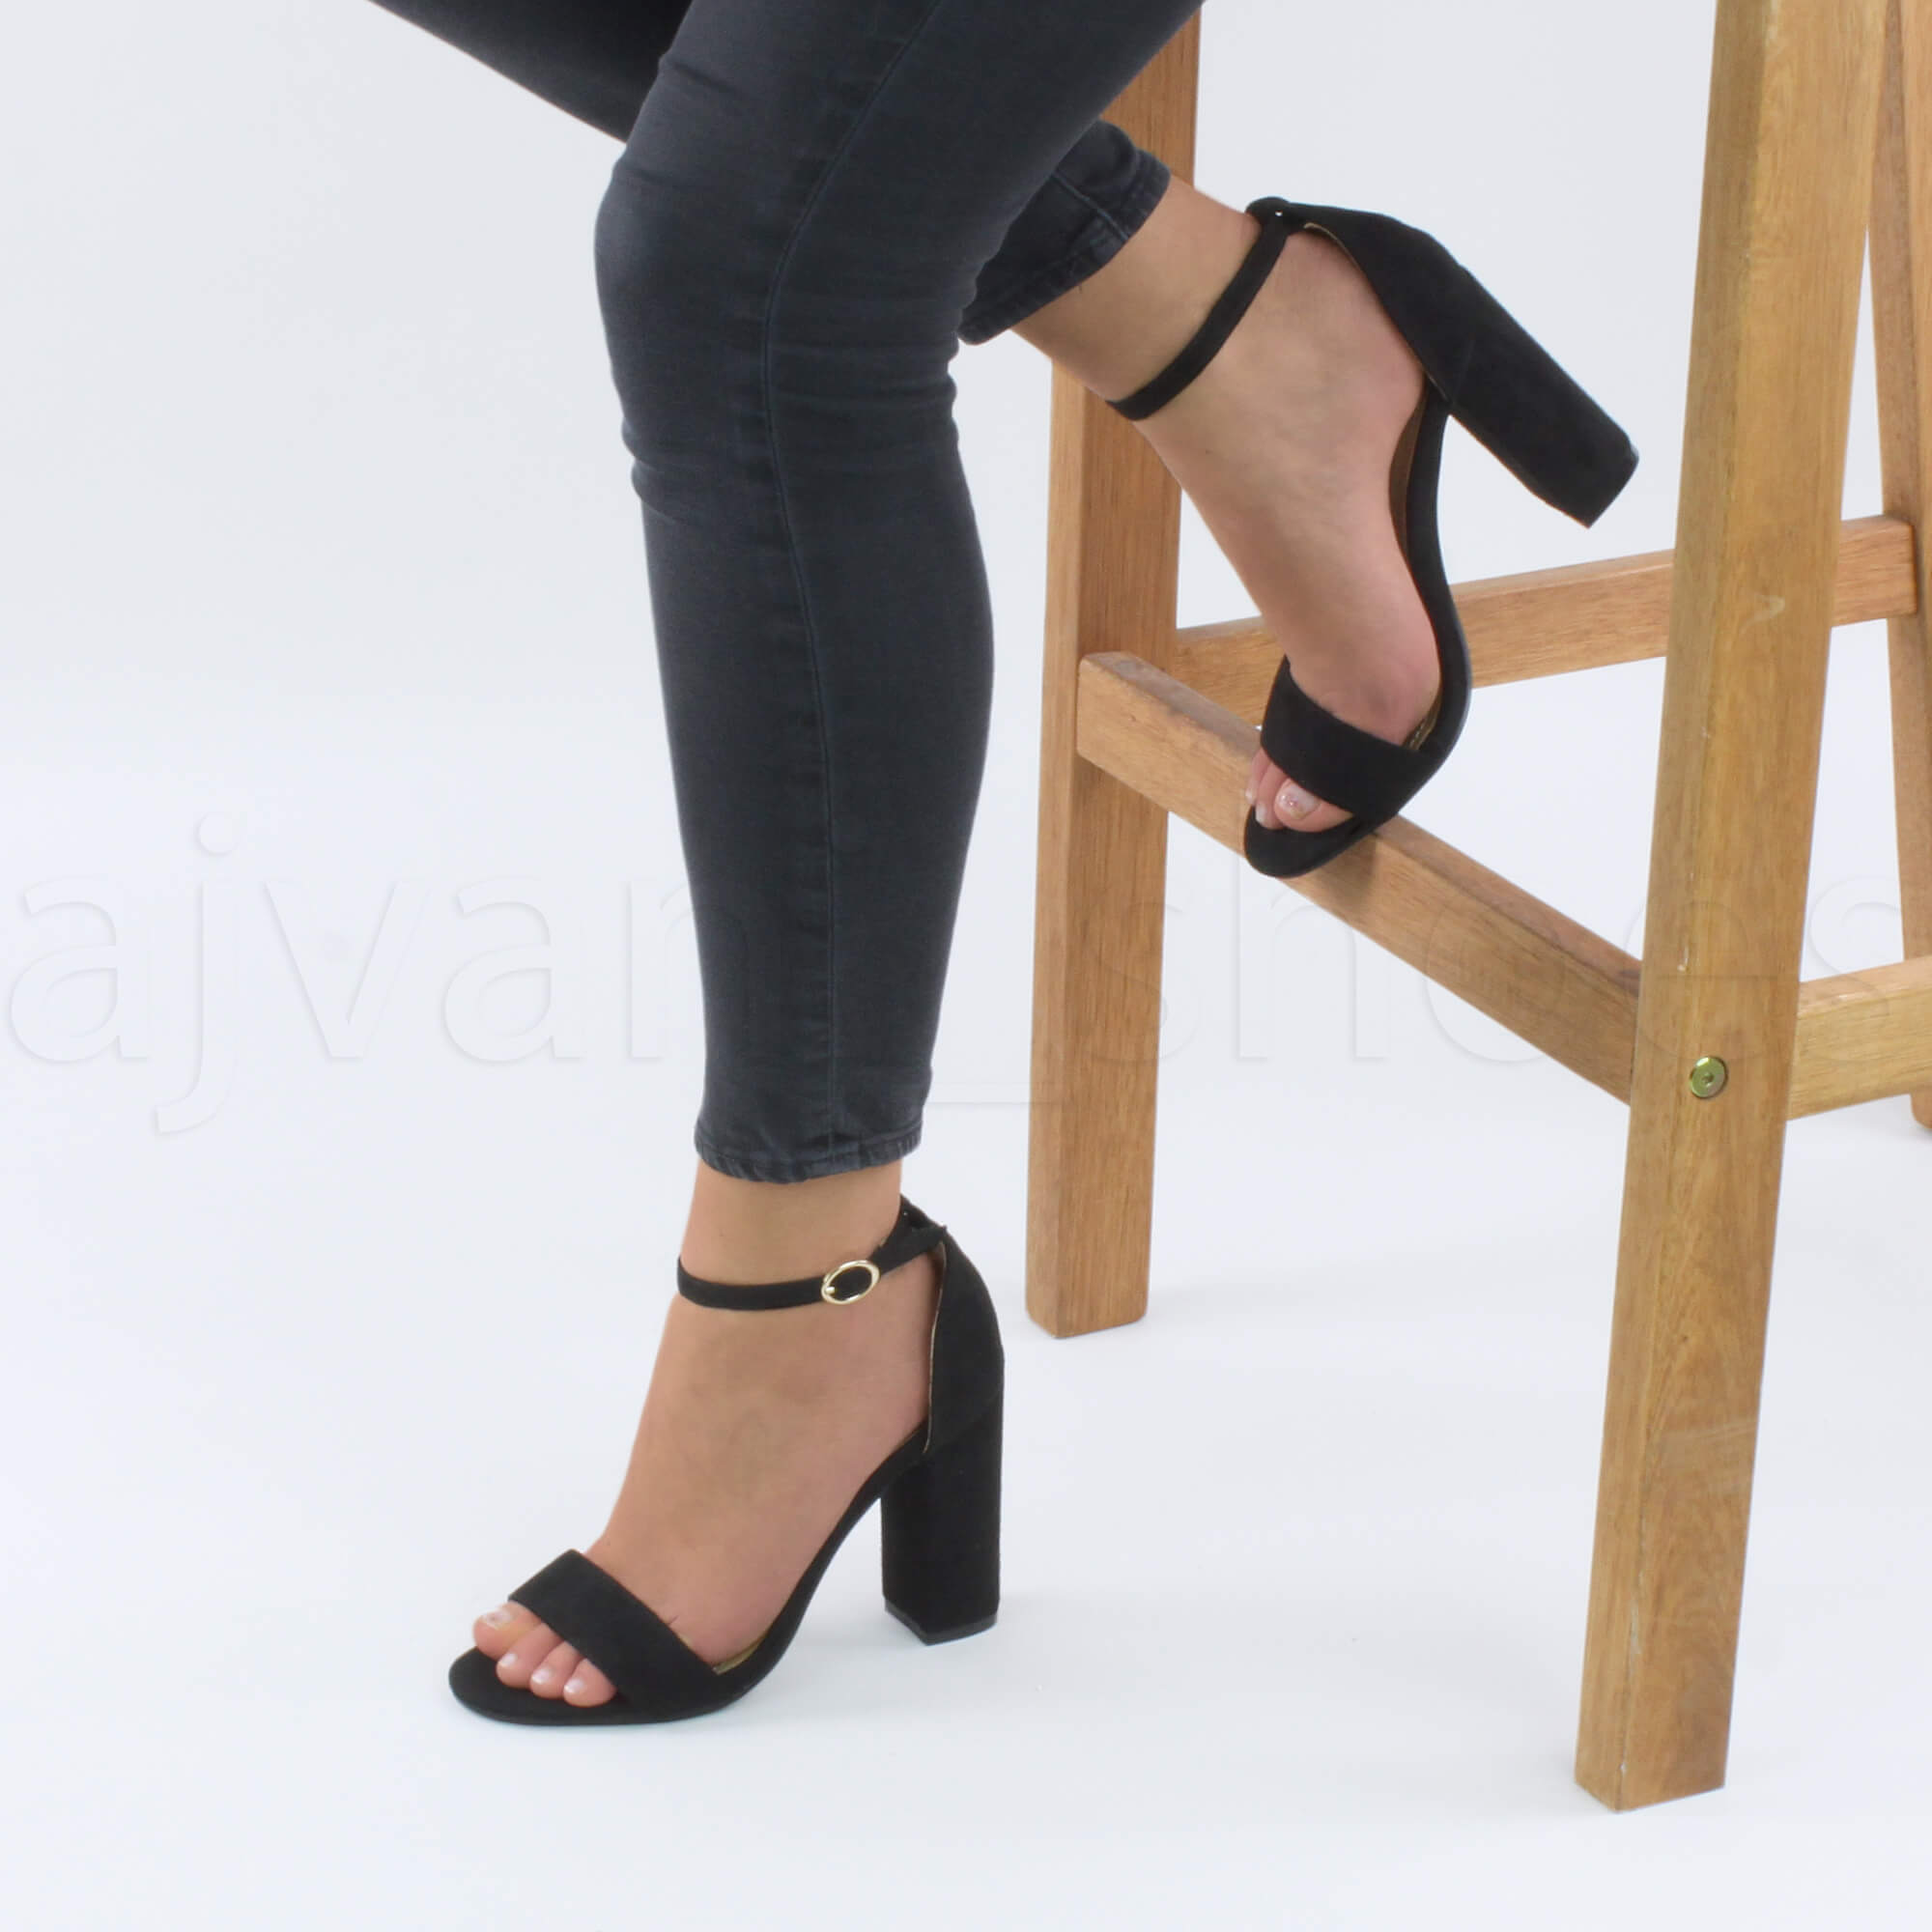 WOMENS-LADIES-BLOCK-HIGH-HEEL-ANKLE-STRAP-PEEP-TOE-STRAPPY-SANDALS-SHOES-SIZE thumbnail 46